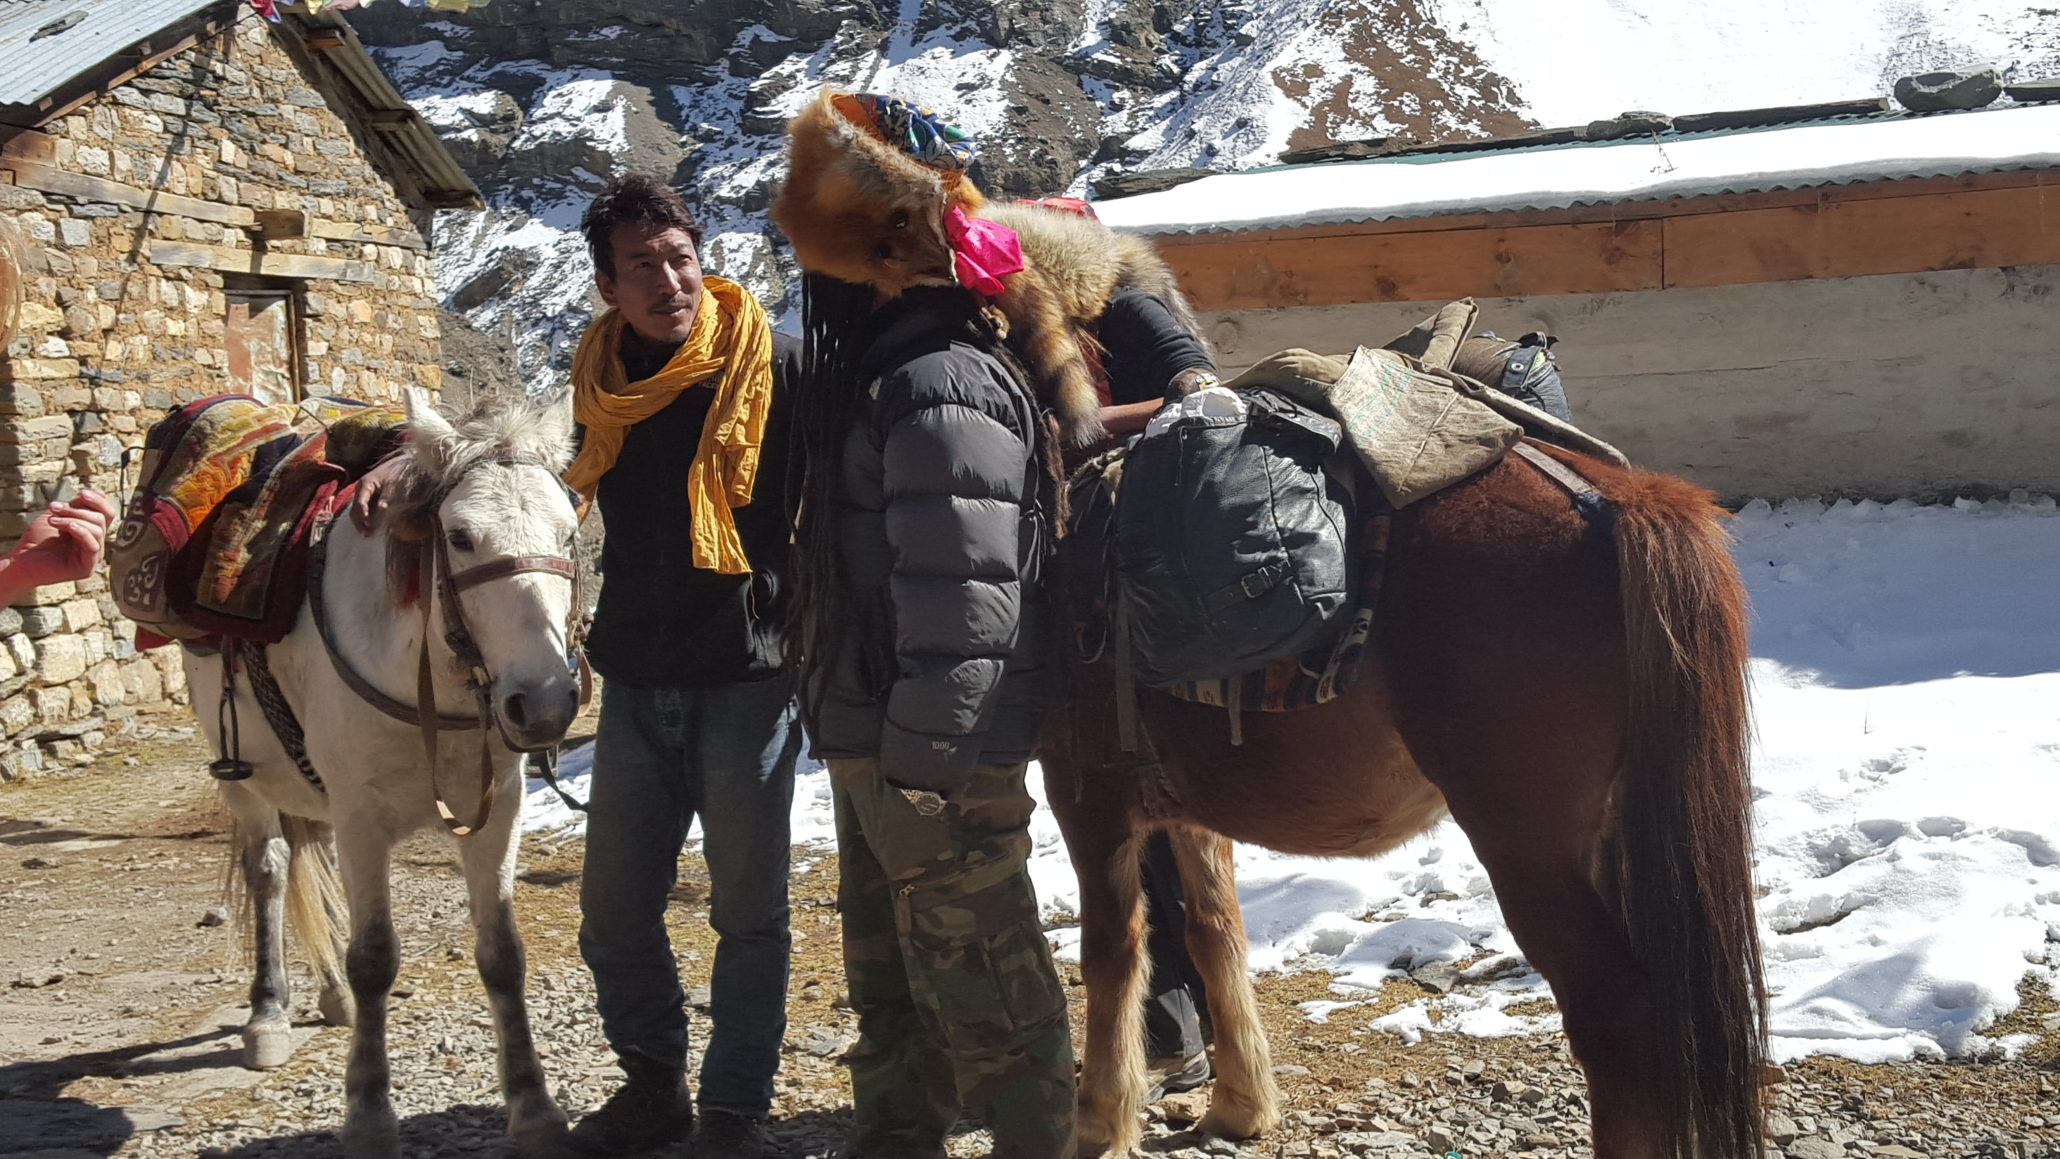 2 nepali people with their horses and behind them are the himalayas moutains